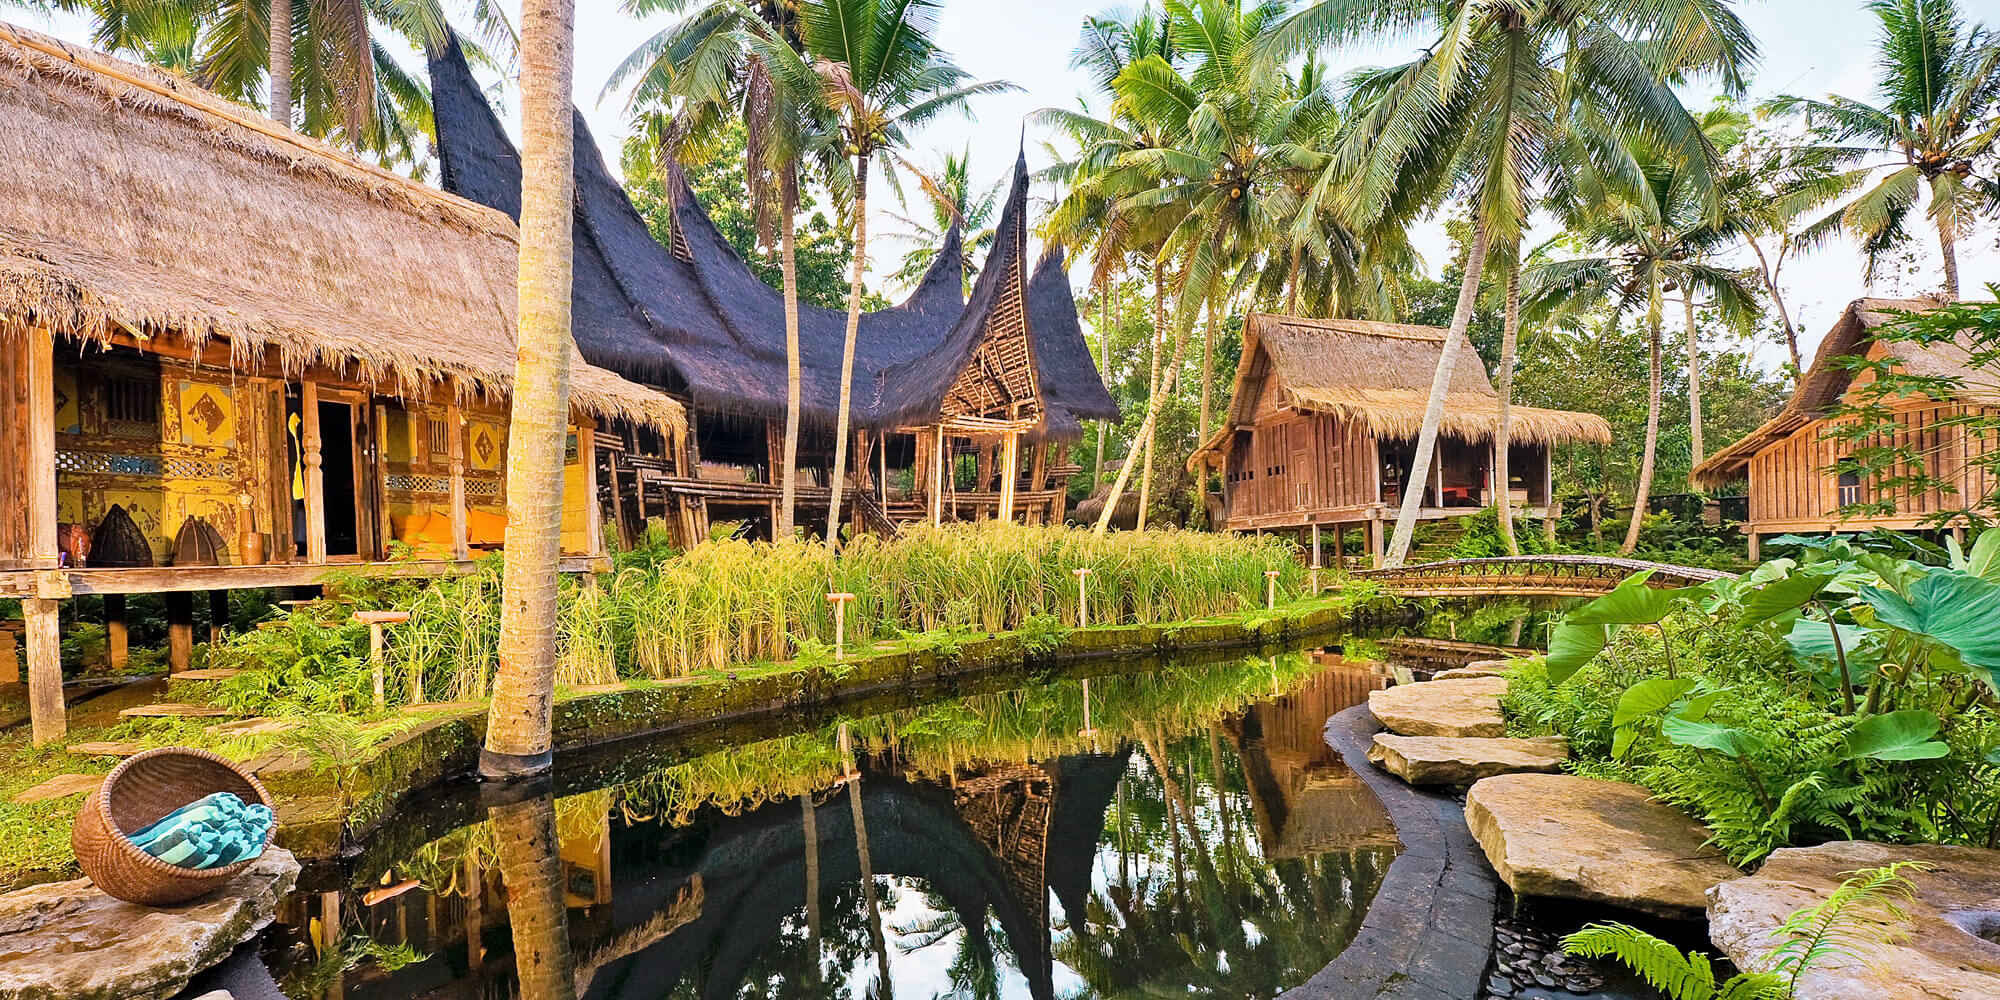 Bali Unique Hotels That Are Worth To Try Last One Tours Voucher Hotel Berry Glee Kuta Another Offers A Concept In Is The Bambu Indah Accommodation Facility Located Sayan Village Ubud